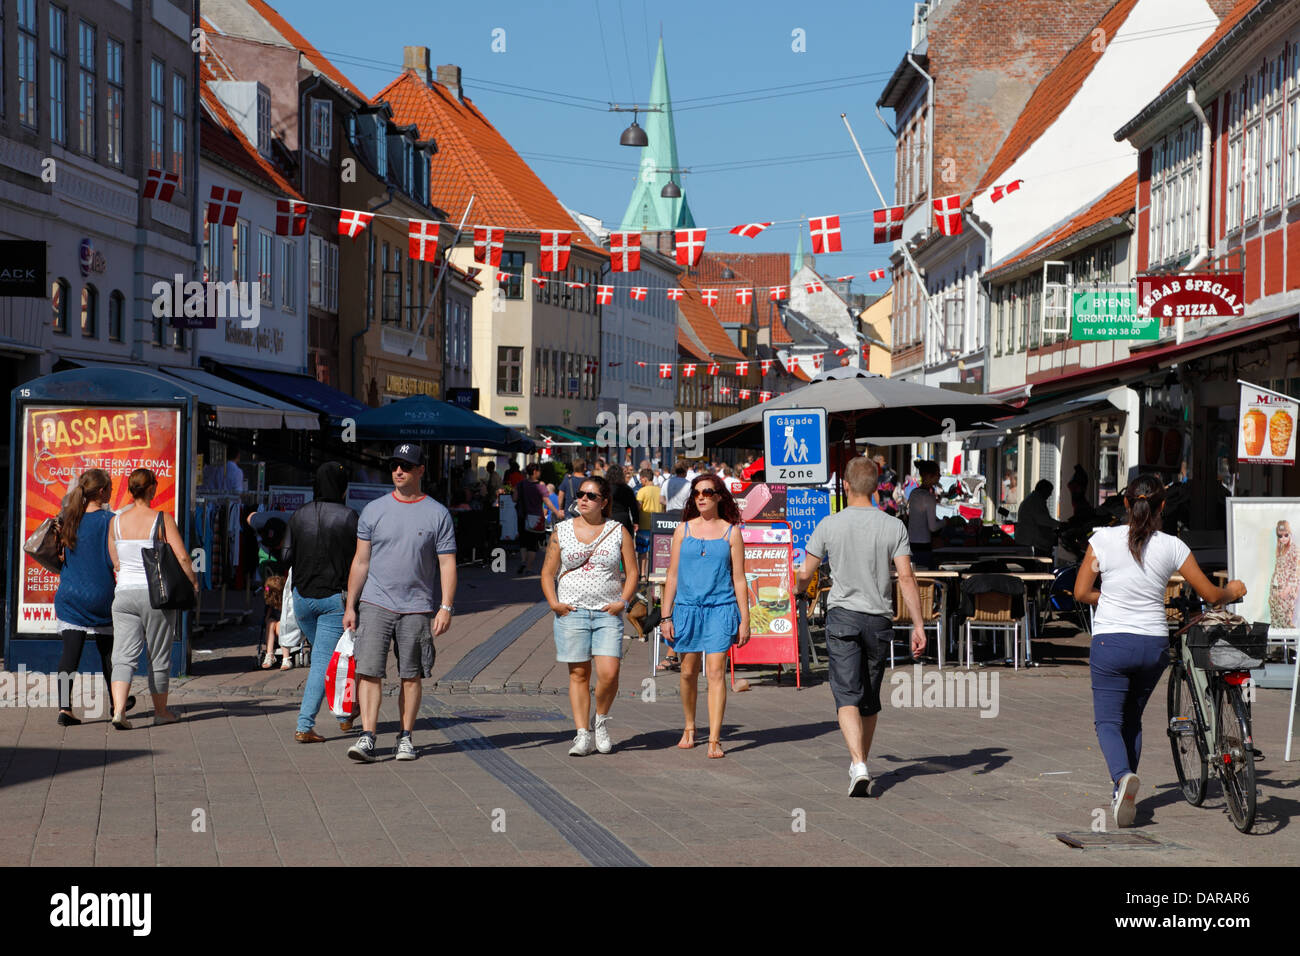 Stengade, the main street in Elsinore, Helsingør, through 600 years. Today a shopping street full of Danes, - Stock Image